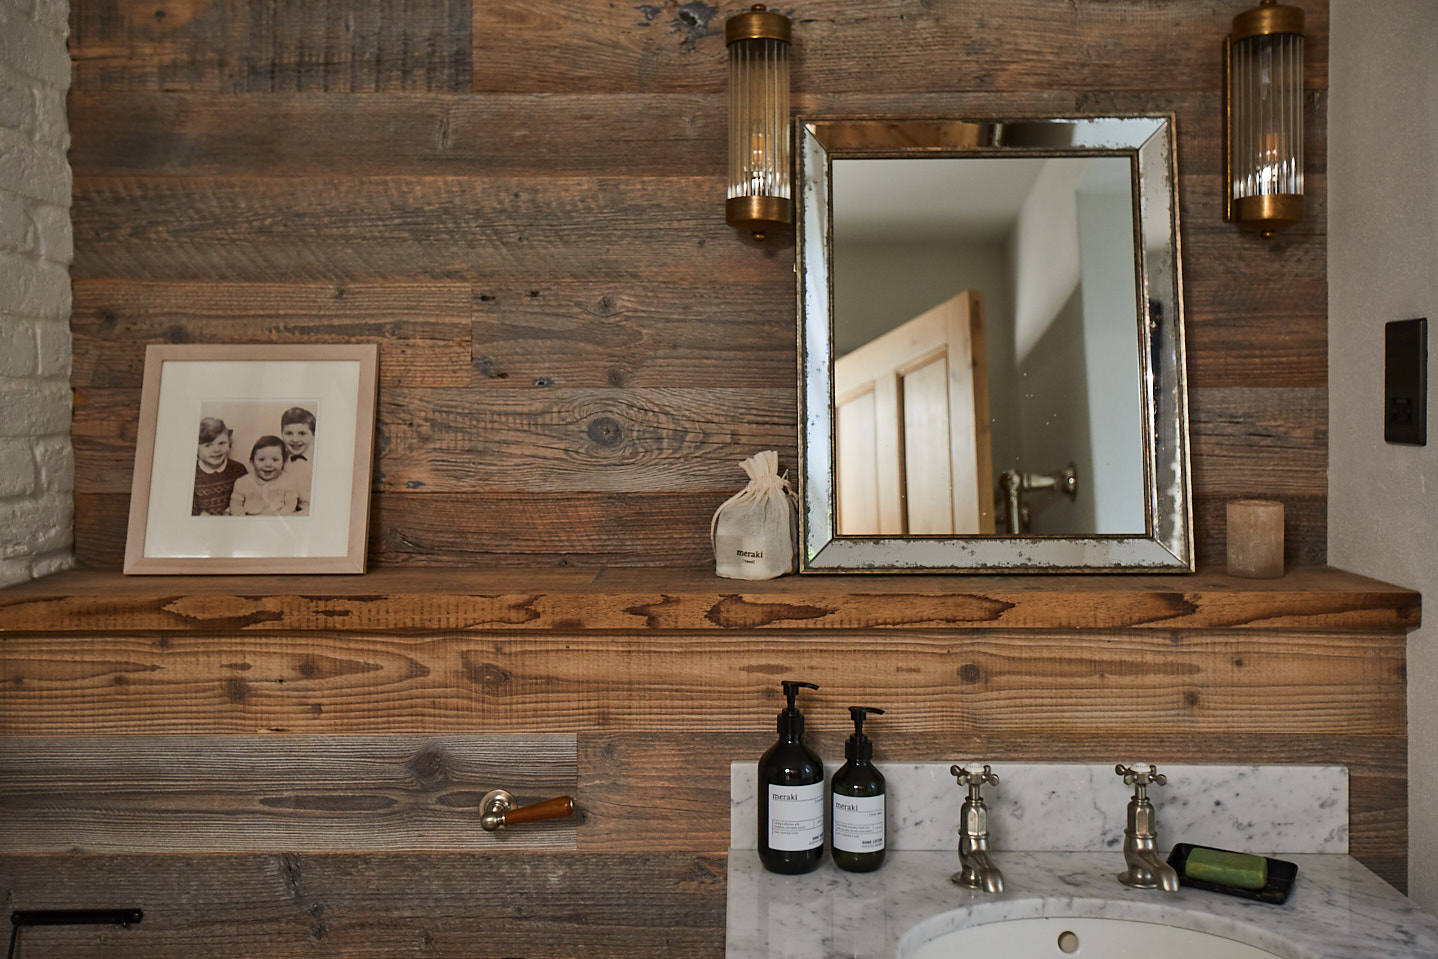 Reclaimed spruce wood wall cladding with freestanding vanity